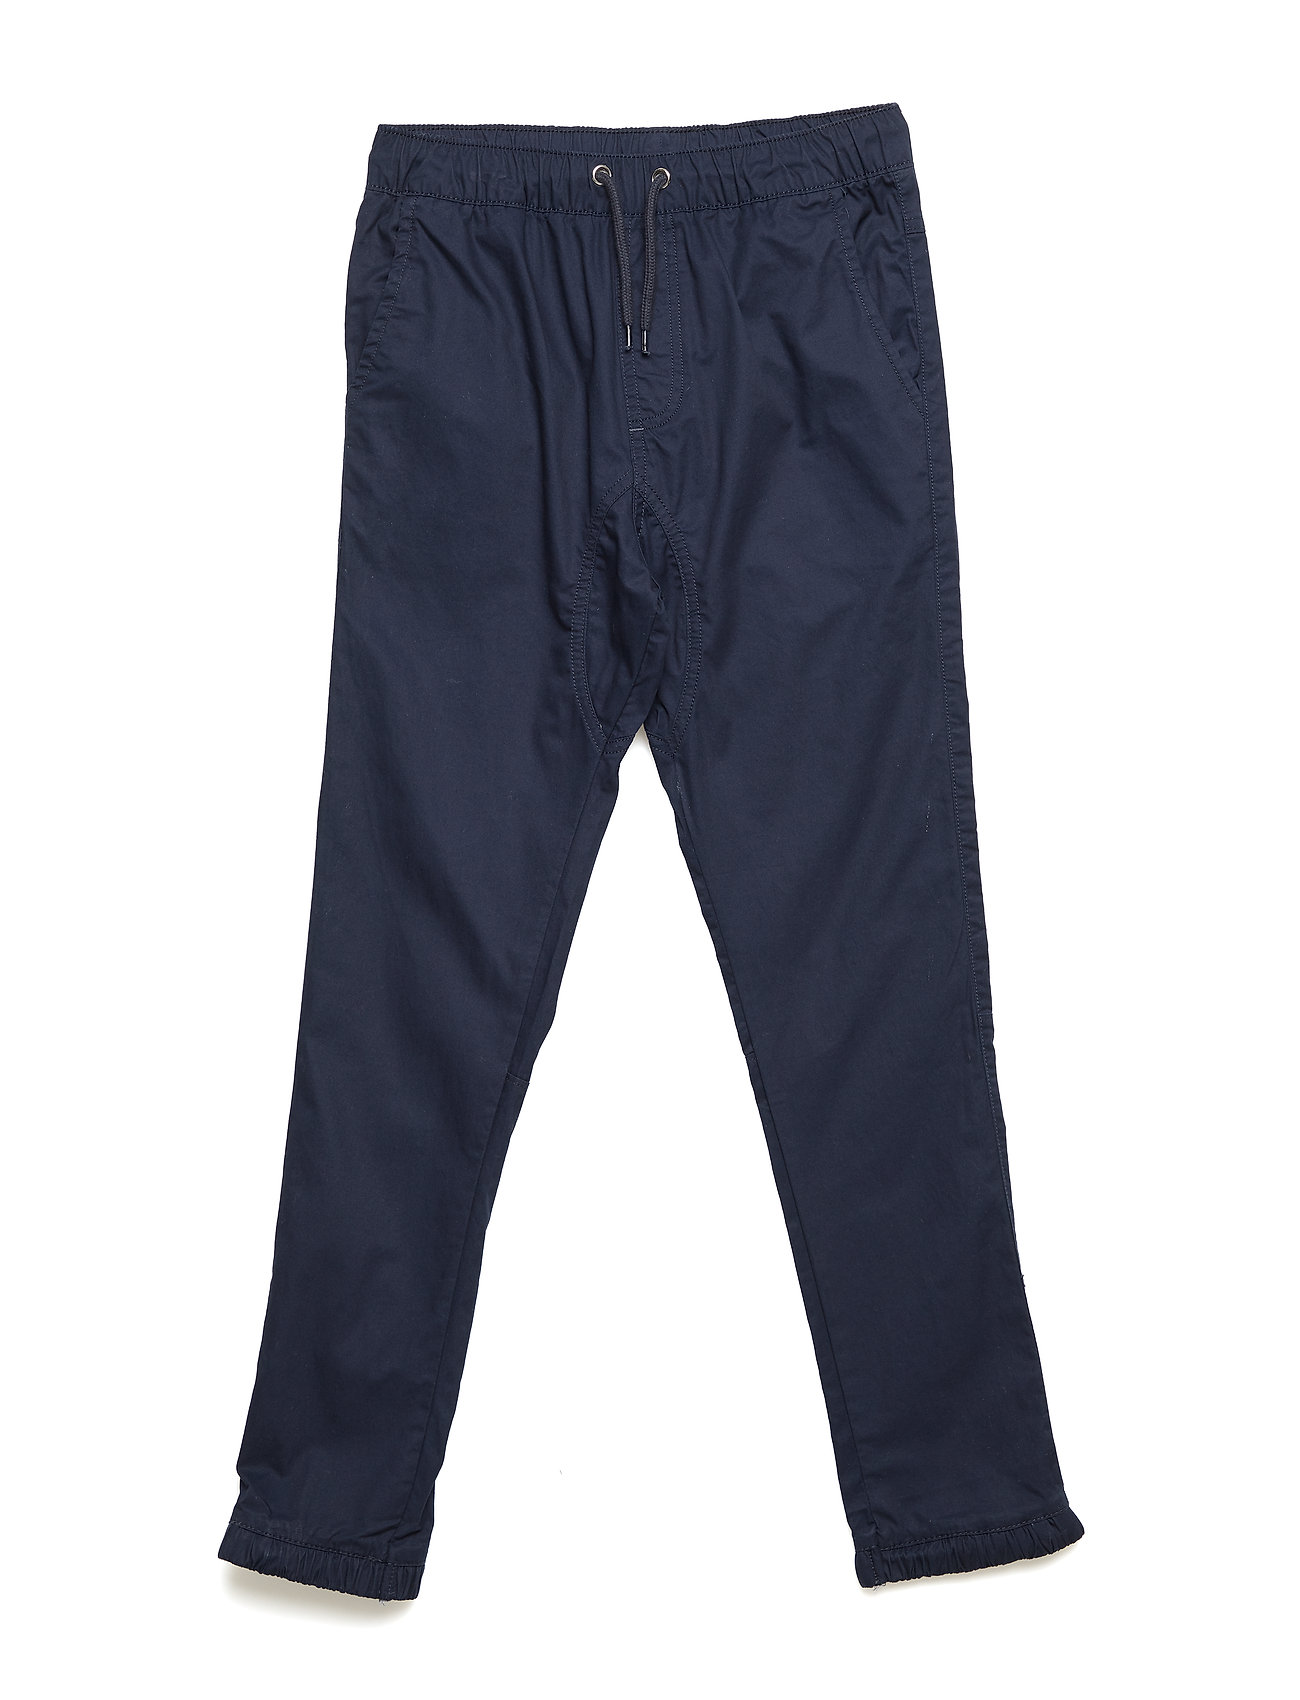 Image of Ives Pants Bukser Blå THE NEW (3090829537)